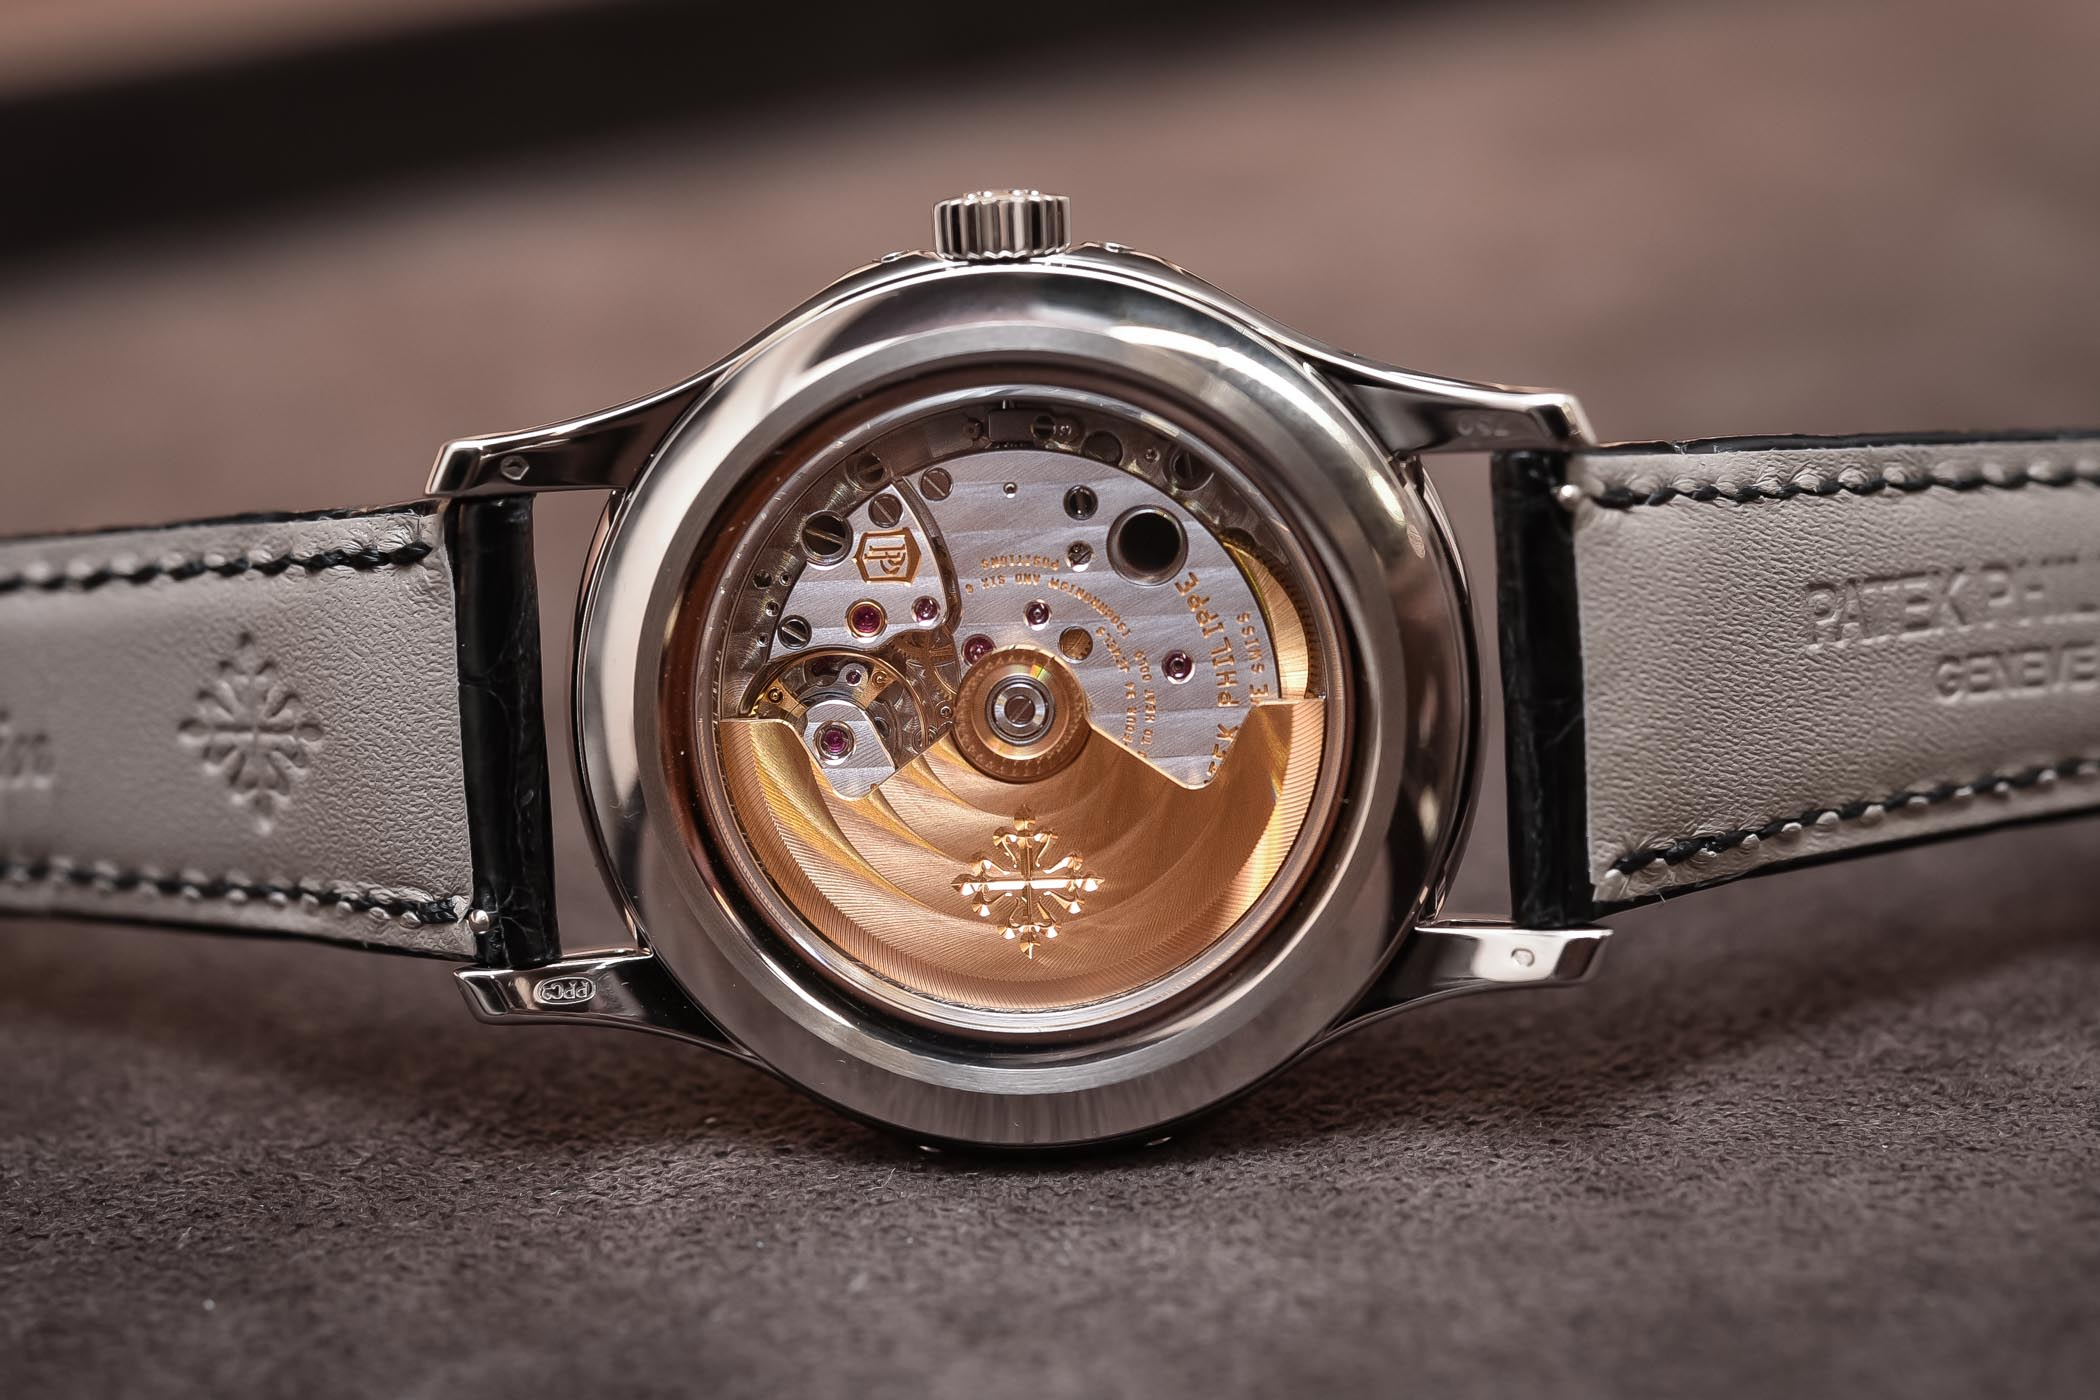 Hands On Patek Philippe Ref 5205g 013 The Young Man S Patek